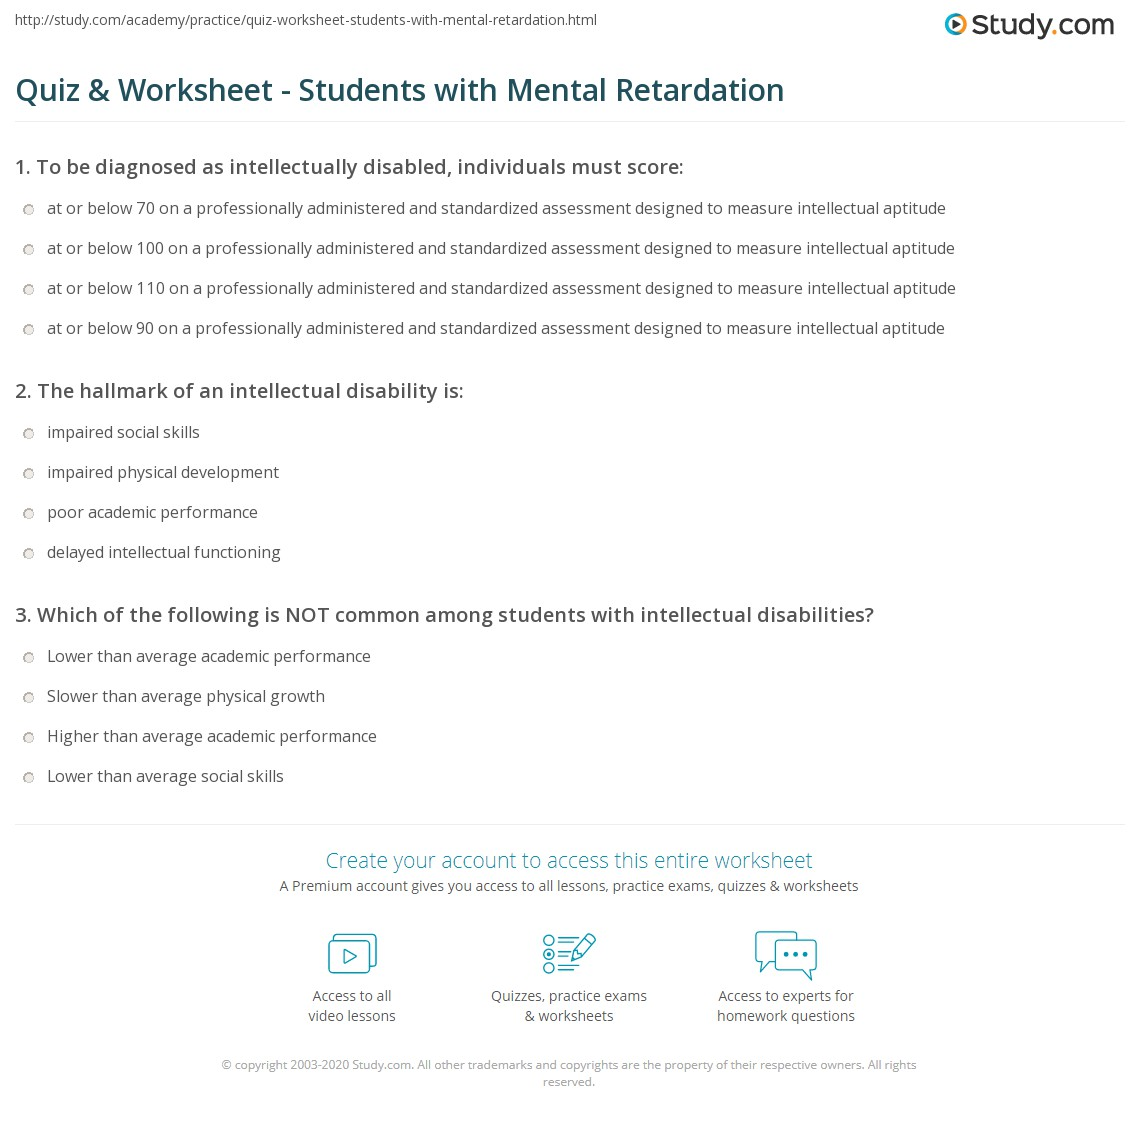 reading and students with mental retardation Mental retardation lesson directions: print the mental retardation reading comprehension passage and questions (see below) students should read the passage silently, then answer the.